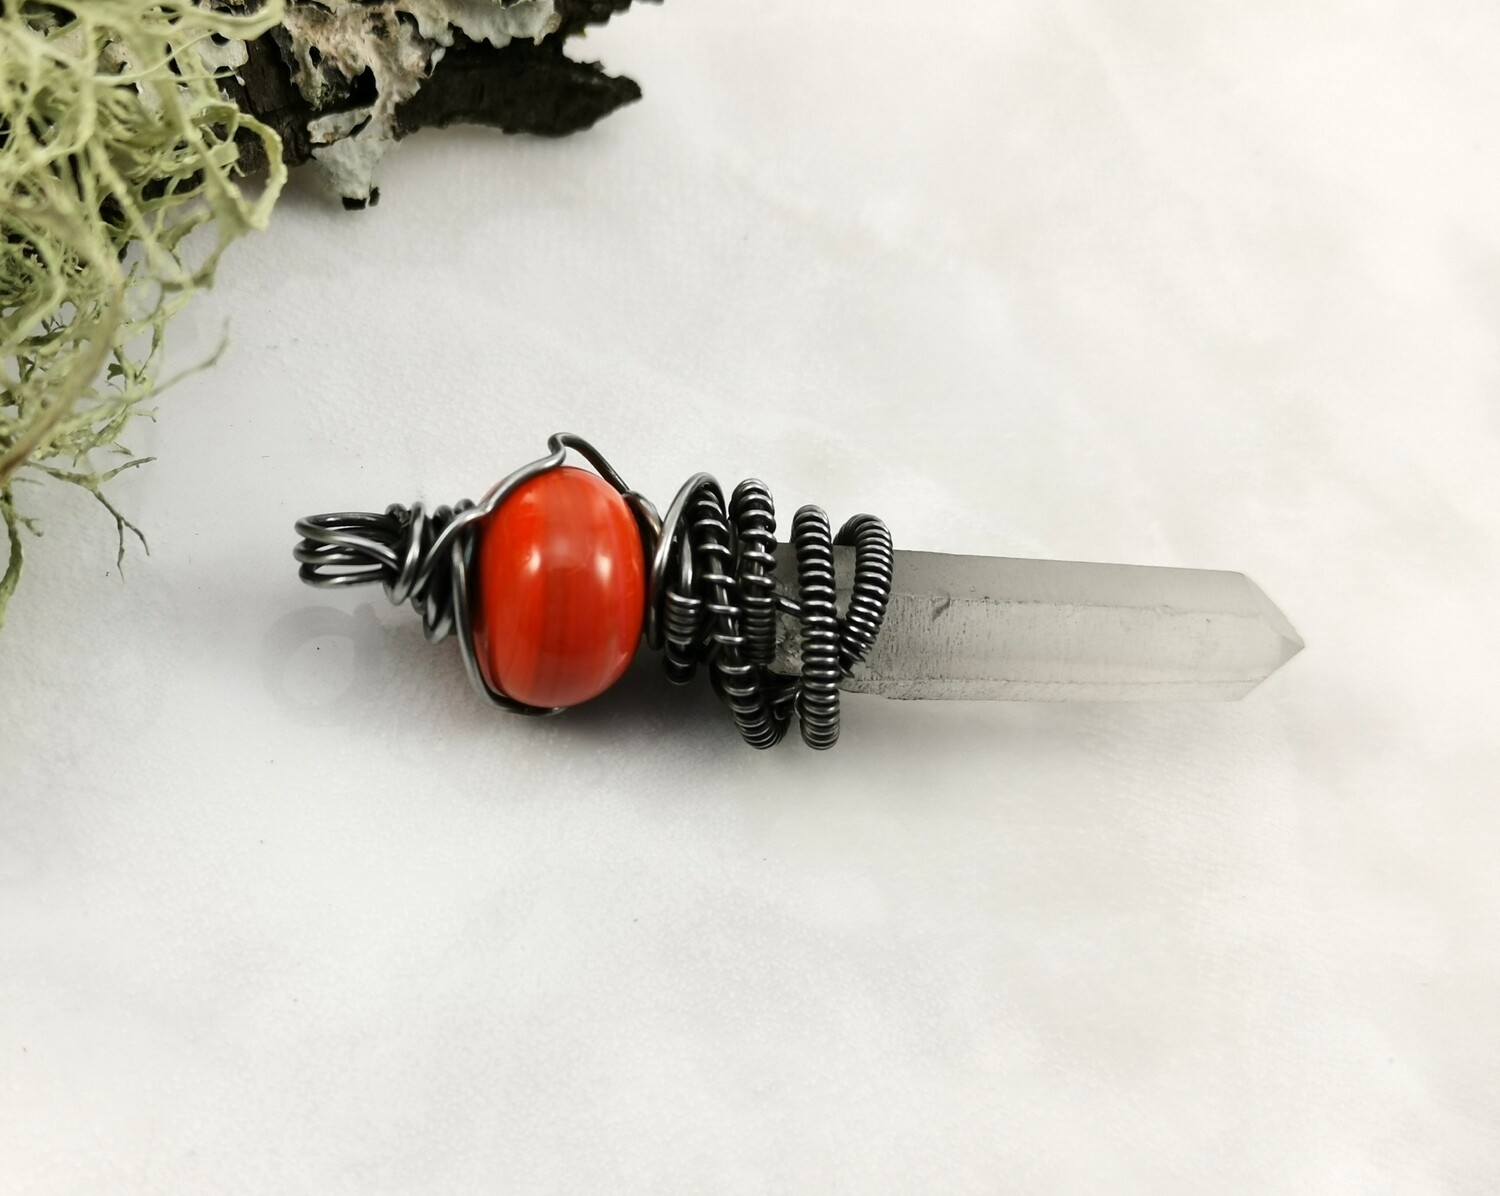 Crystal Healing, Crystal Quartz Points, Quartz Healing Stones, Reiki, Meditation, Orange Lampwork, Crystal Dagger Pendant, Steel Wire Wrapped, Steel Wire, Pendant, Necklace, Gifts for Her